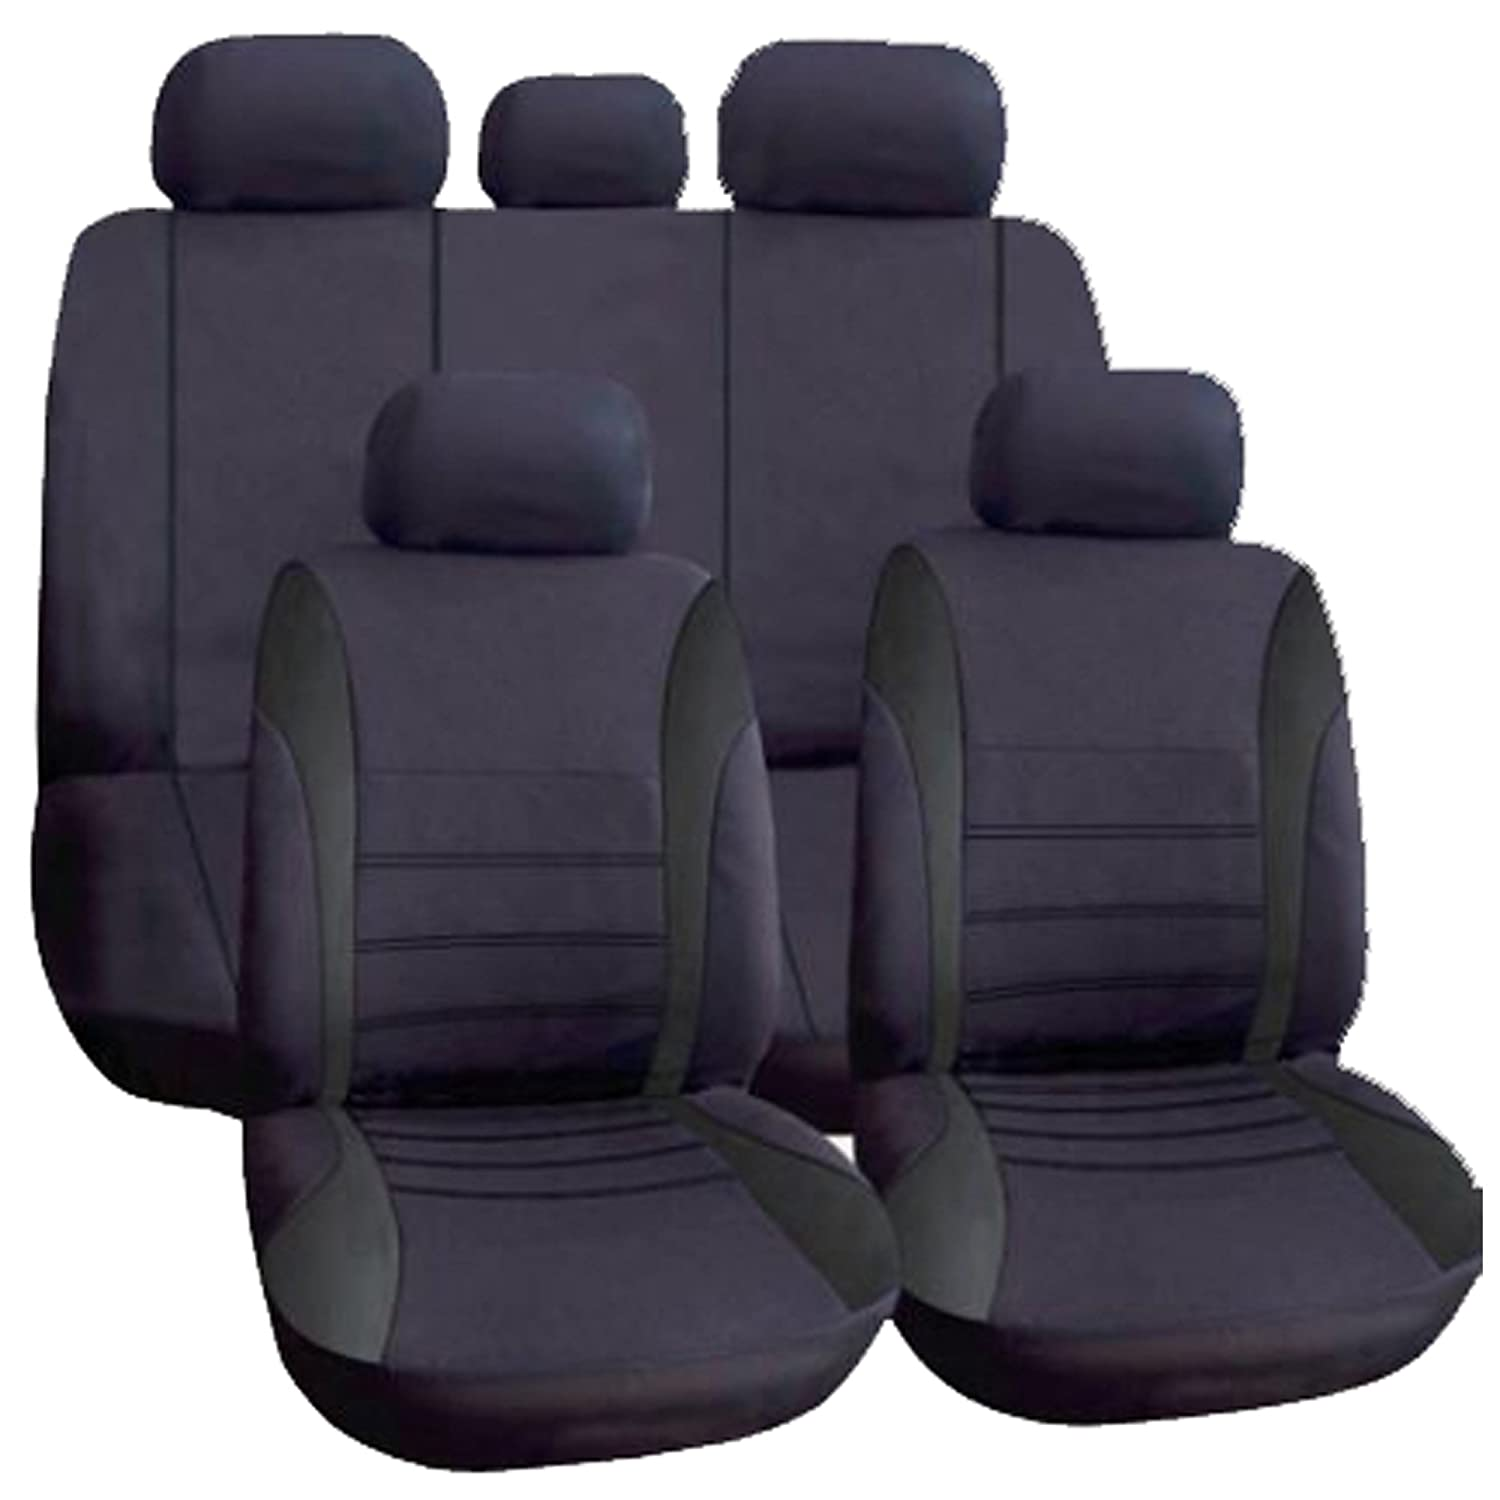 black//silver Car seat covers fit Opel Corsa full set